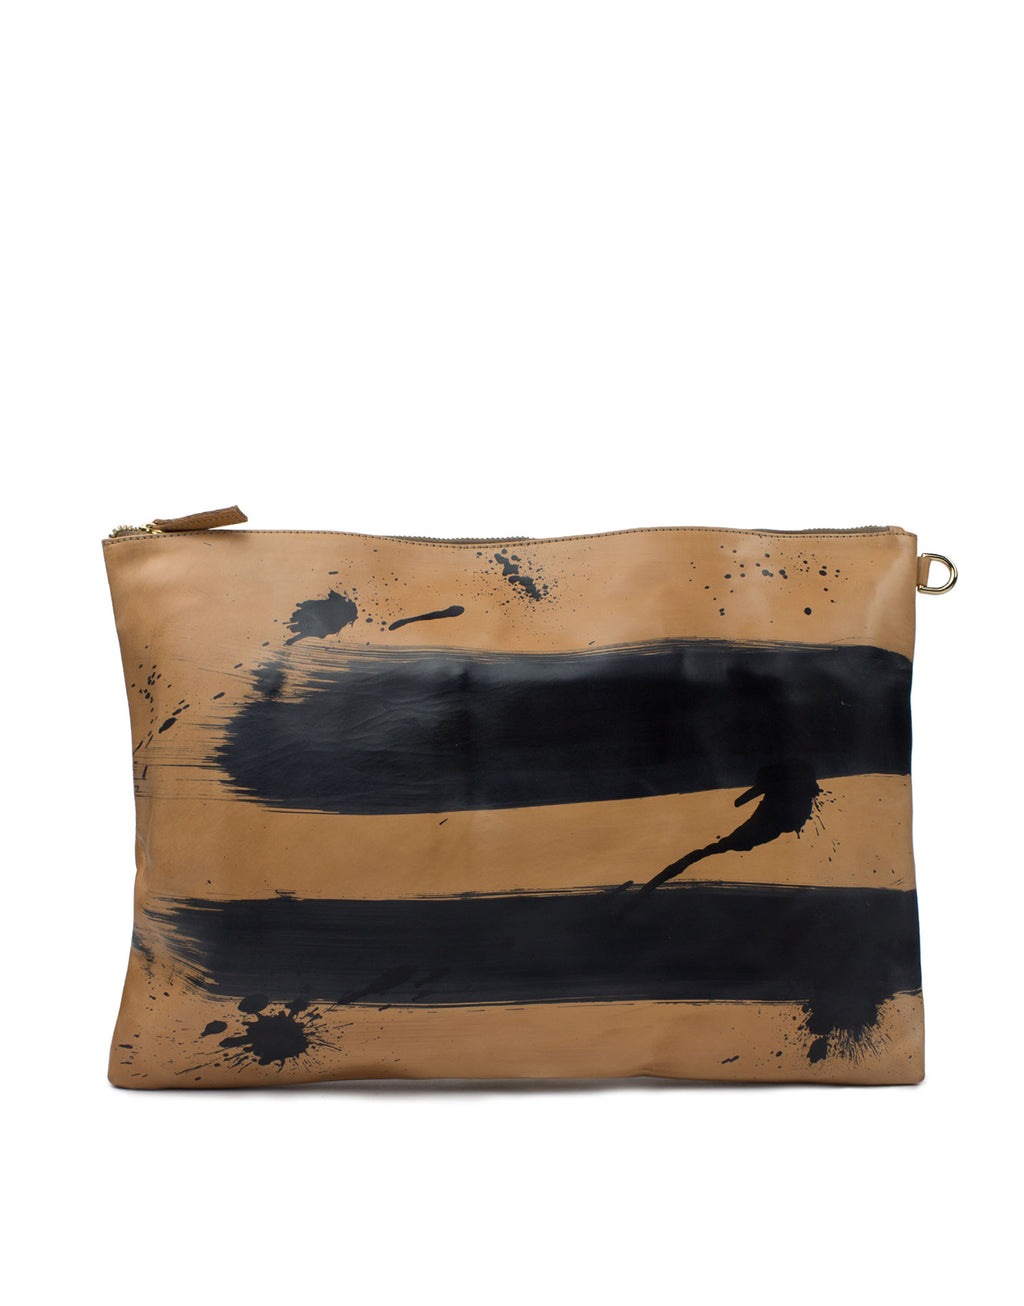 Large oversized clutch, hand painted by designer Georgina Goodman in London this bag can even be used as a laptop case!